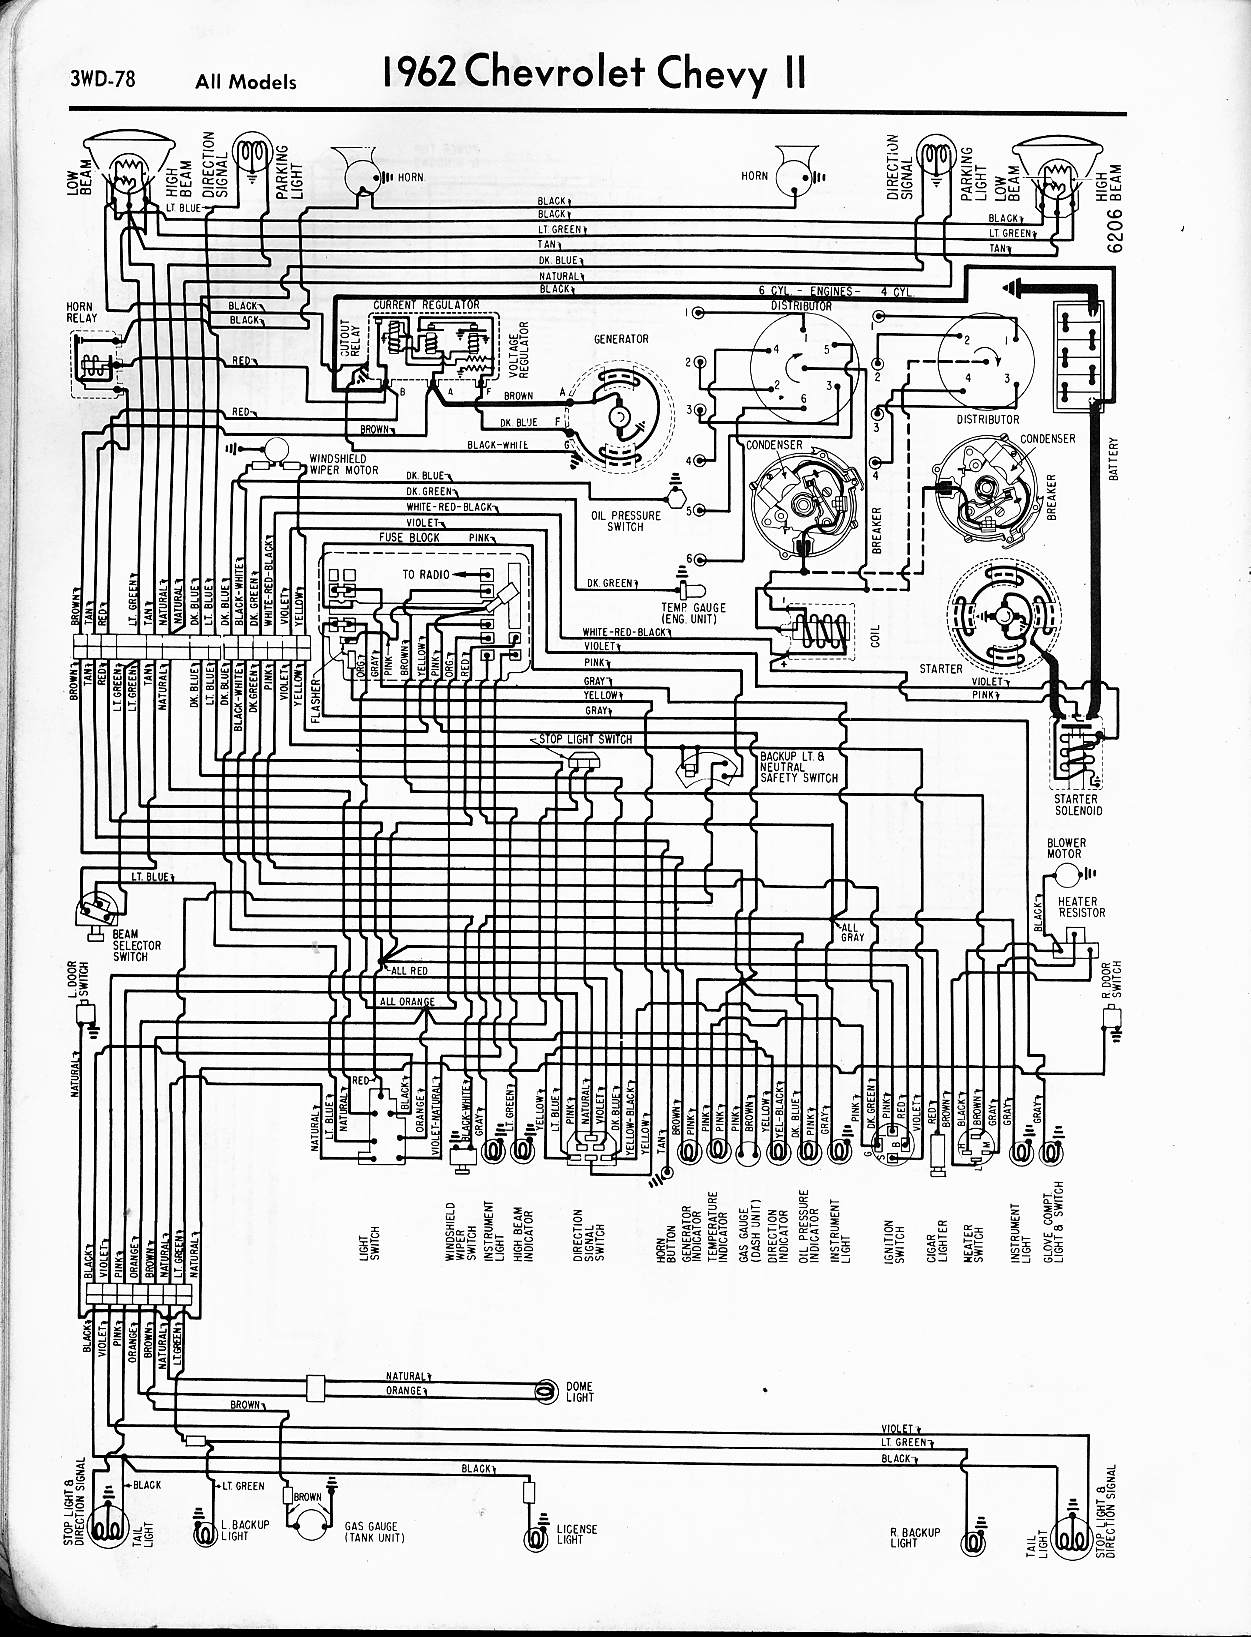 62 impala wiring diagrams wiring diagram todays57 65 chevy wiring diagrams headlight switch diagram 62 impala wiring diagrams